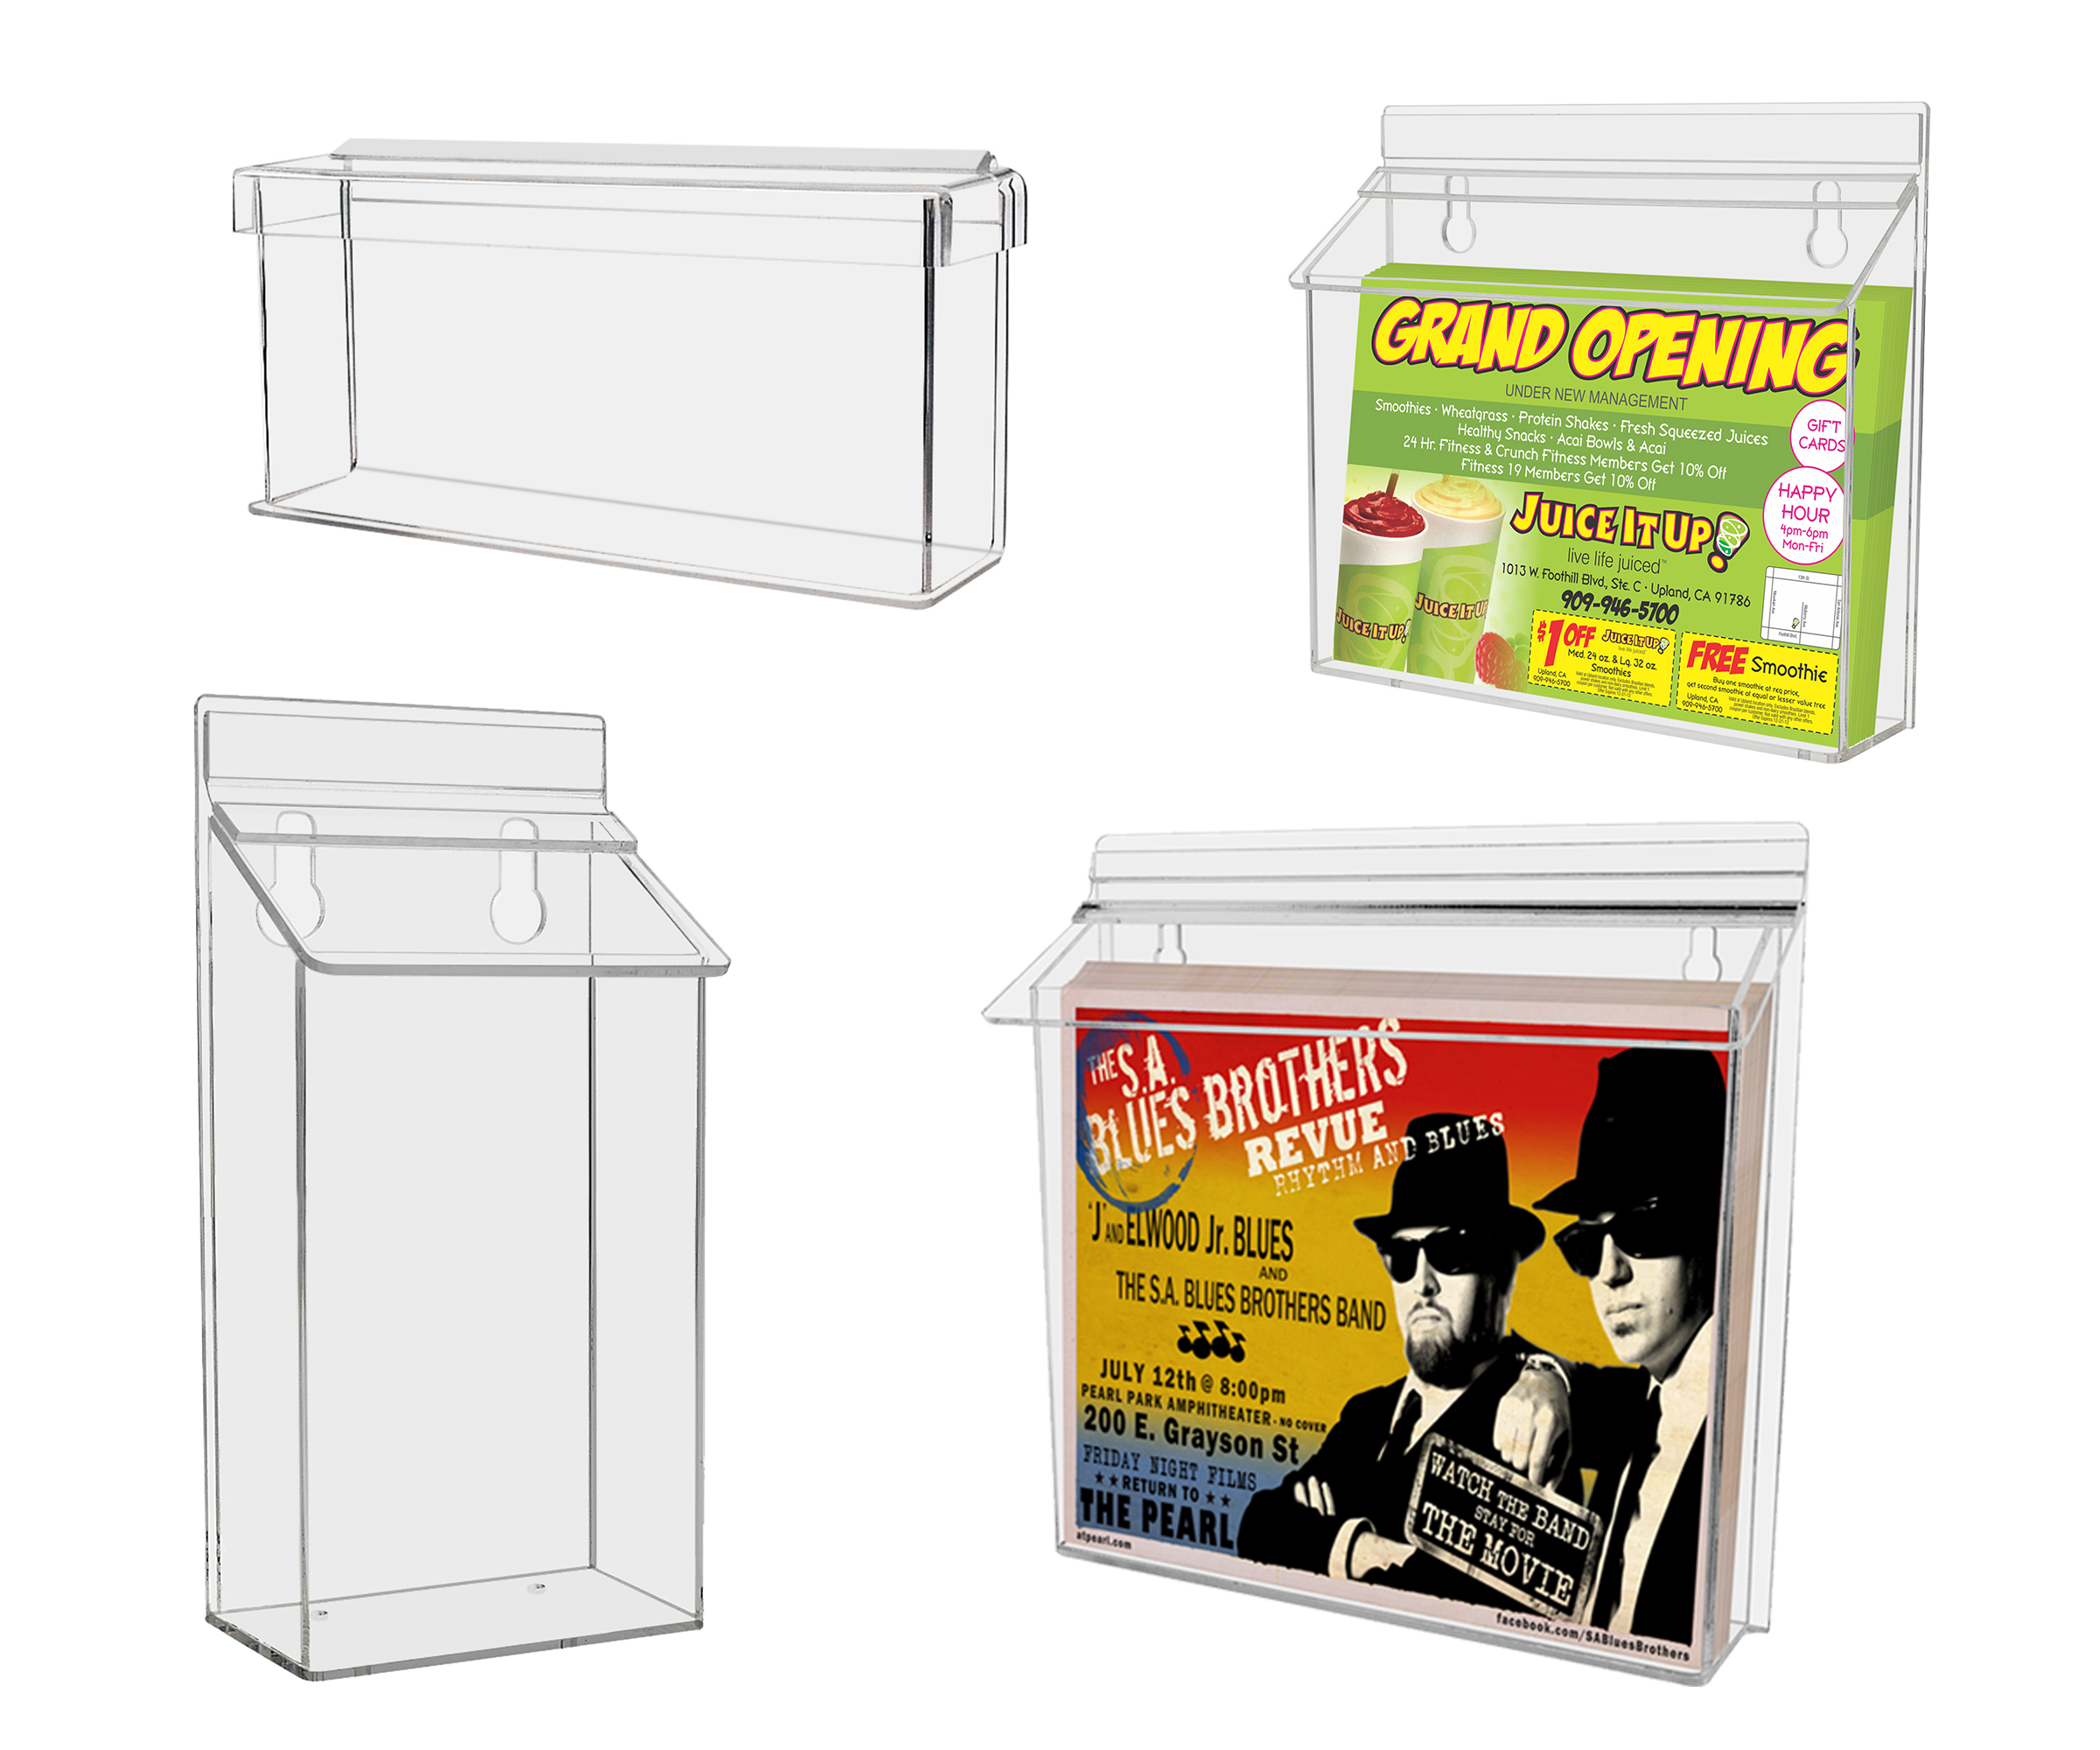 Wall or Counter Brochure Holders